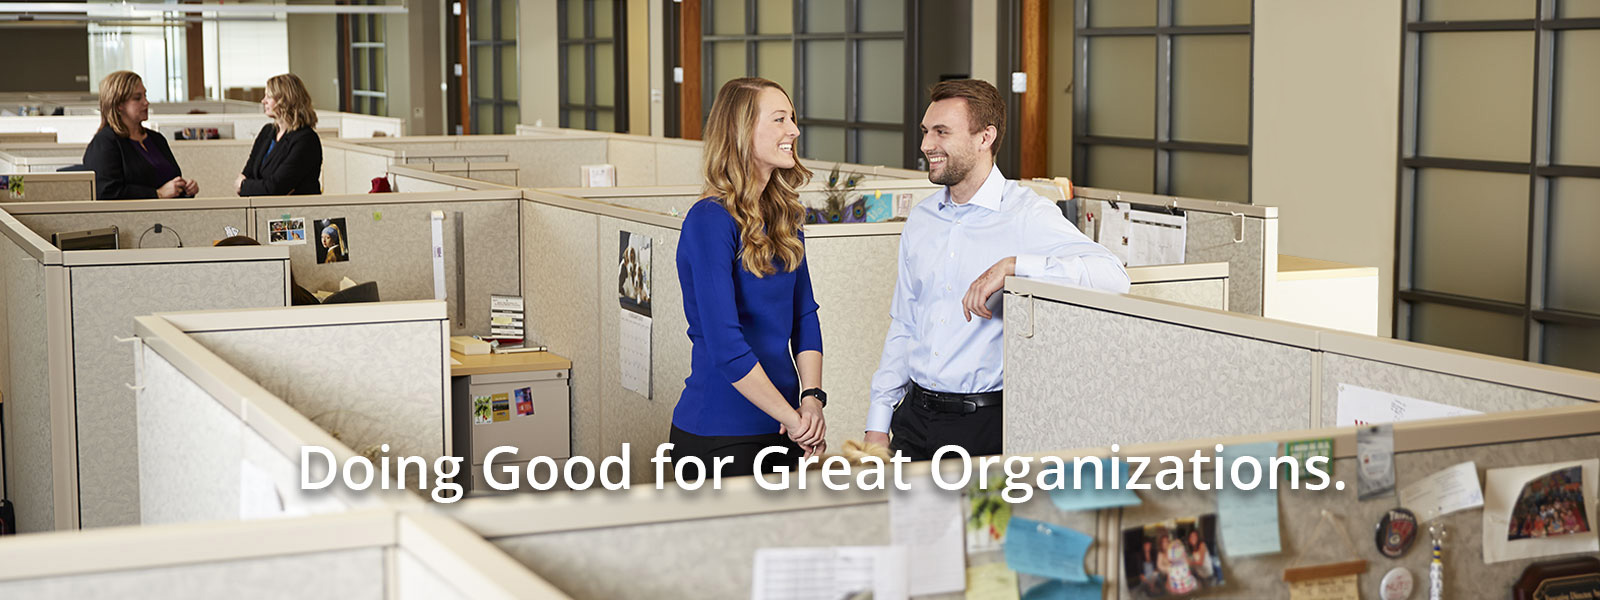 Doing Good for Great Organizations.